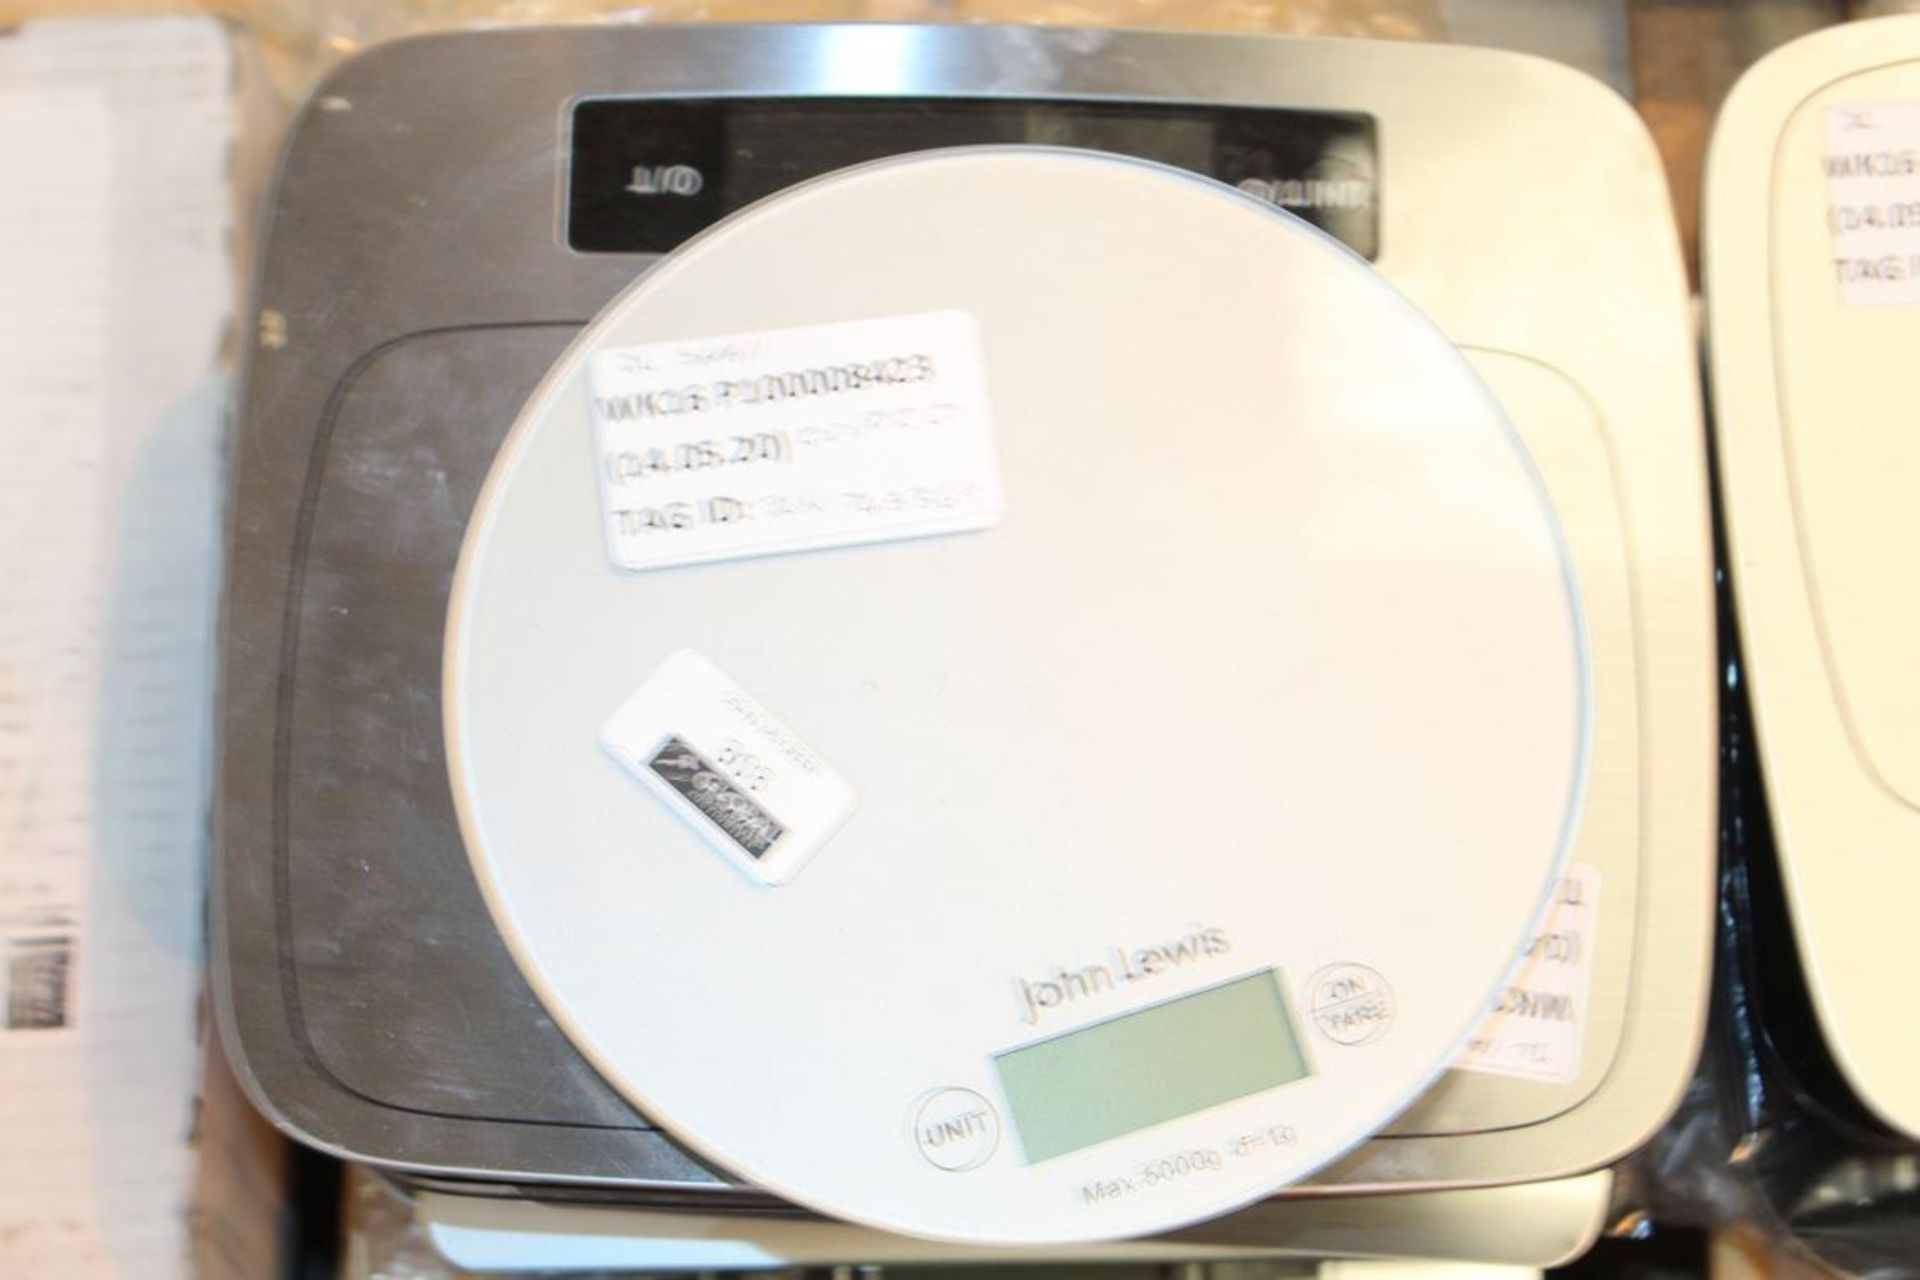 Lot 303 - Pairs Of John Lewis And Partners Digital Weighing Scales To In RRP £10-£20 Each (742398) (744573) (